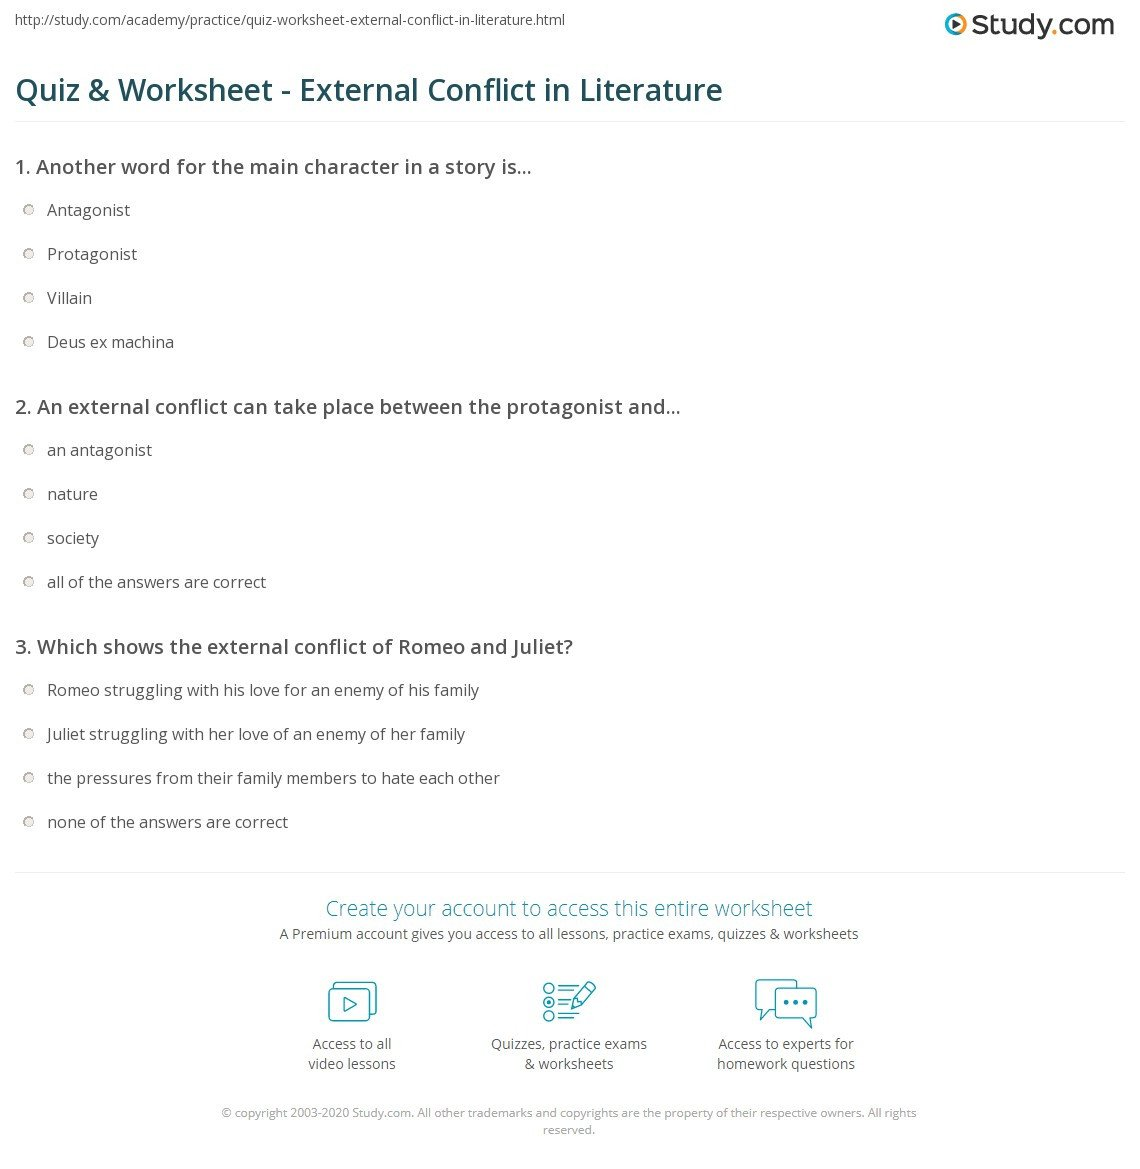 quiz worksheet external conflict in literature